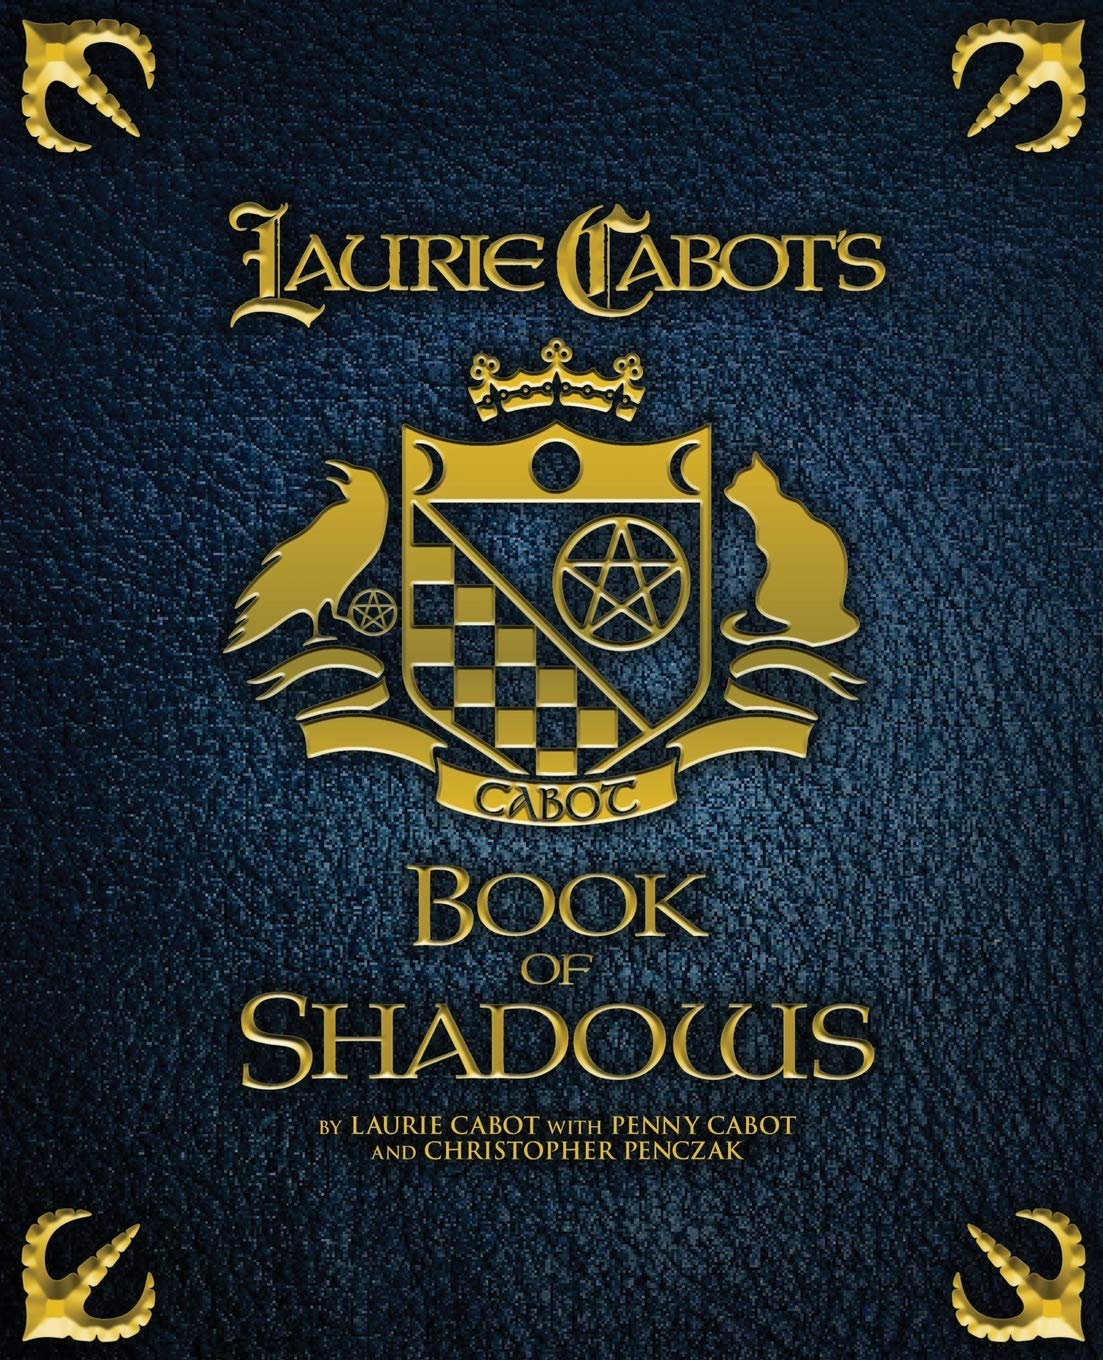 Laurie Cabot's Book of Shadows: Laurie Cabot, Penny Cabot